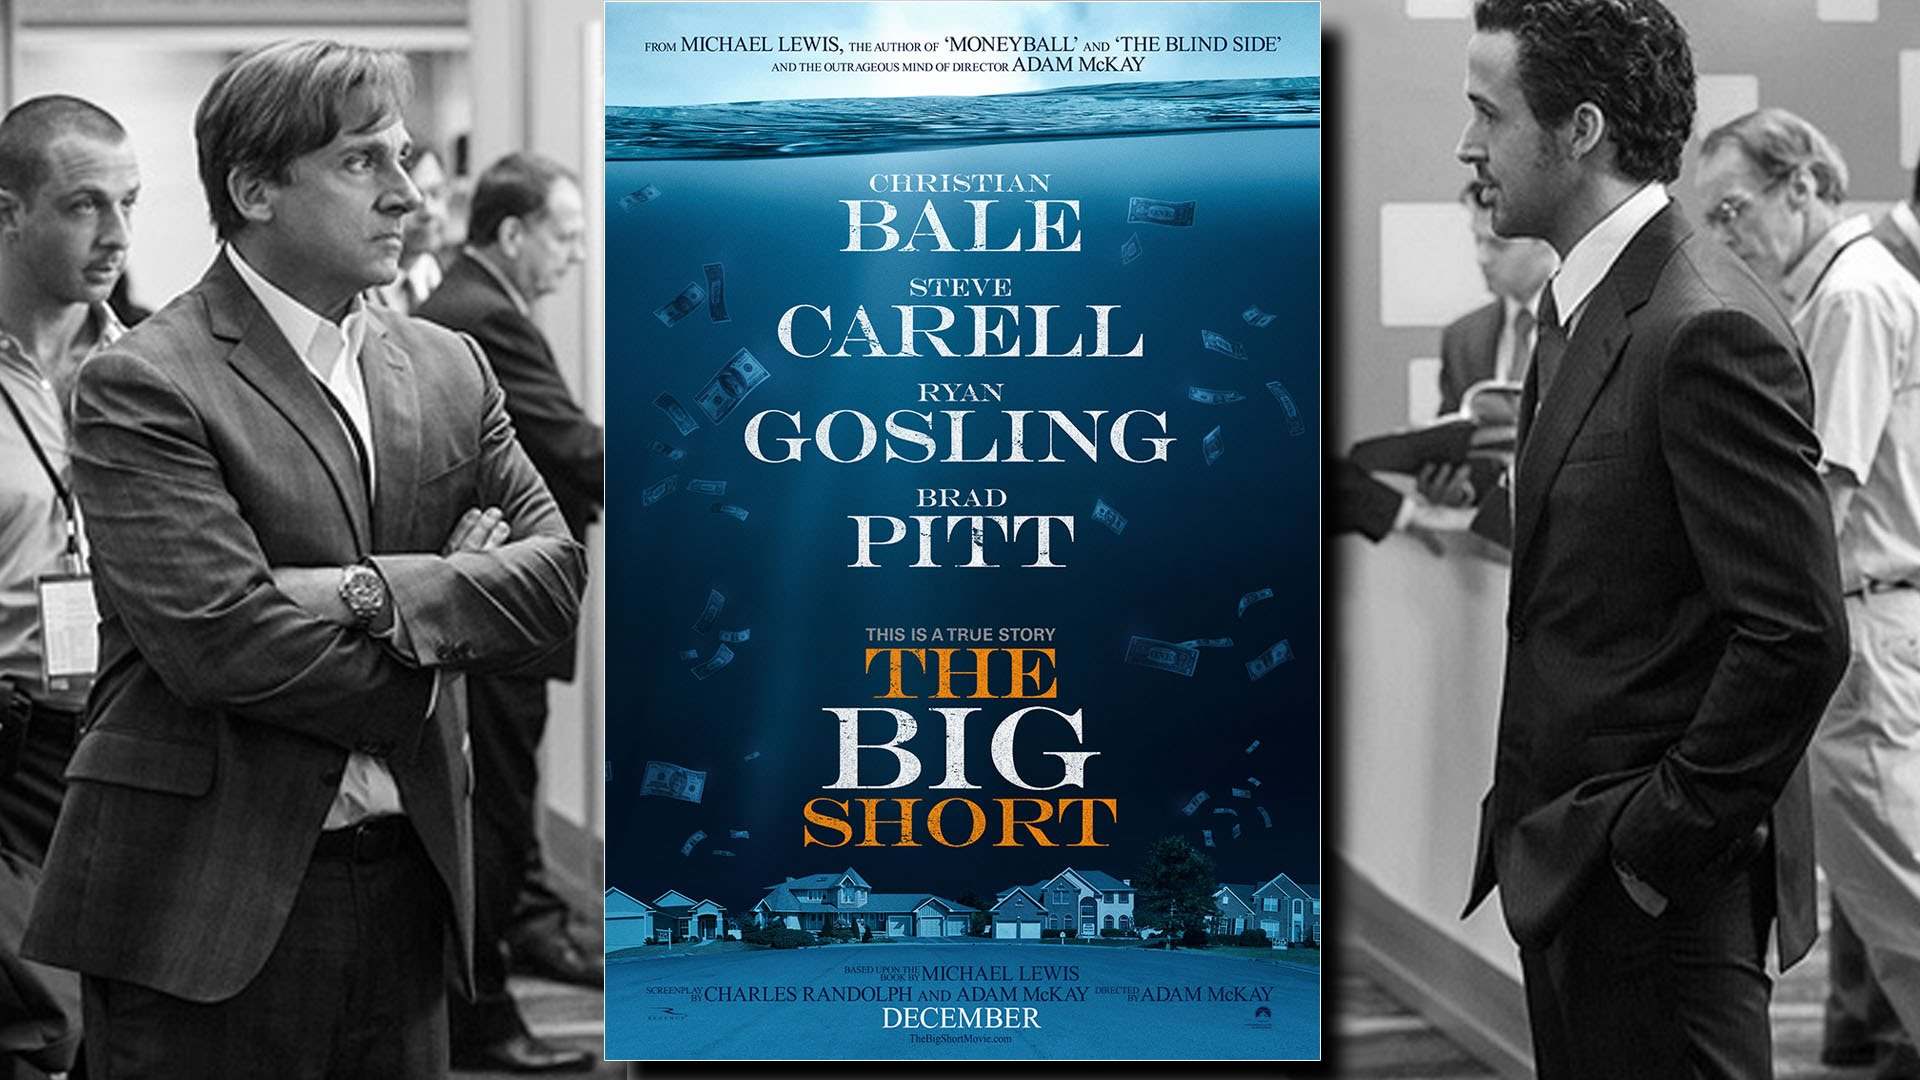 The Big Easy Movie Wallpapers  WallpapersInk The Big Short Trailer   Fandango MOVIECLIPS 1920x1080